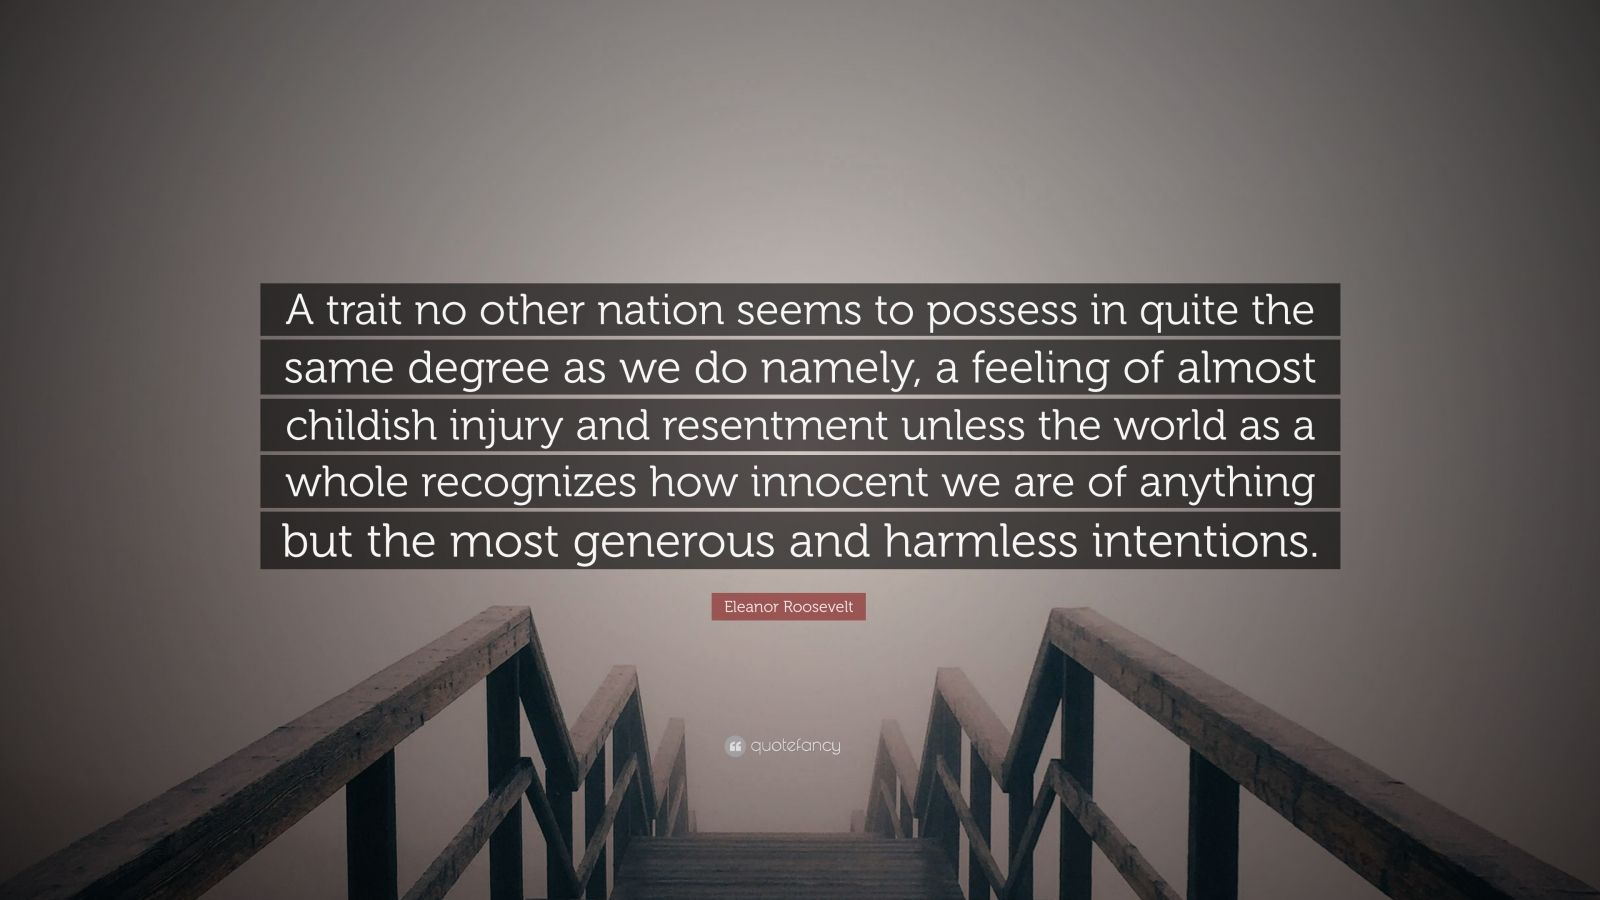 """Eleanor Roosevelt Quote: """"A trait no other nation seems to possess in quite the same degree as we do namely, a feeling of almost childish injury and resentment unless the world as a whole recognizes how innocent we are of anything but the most generous and harmless intentions."""""""